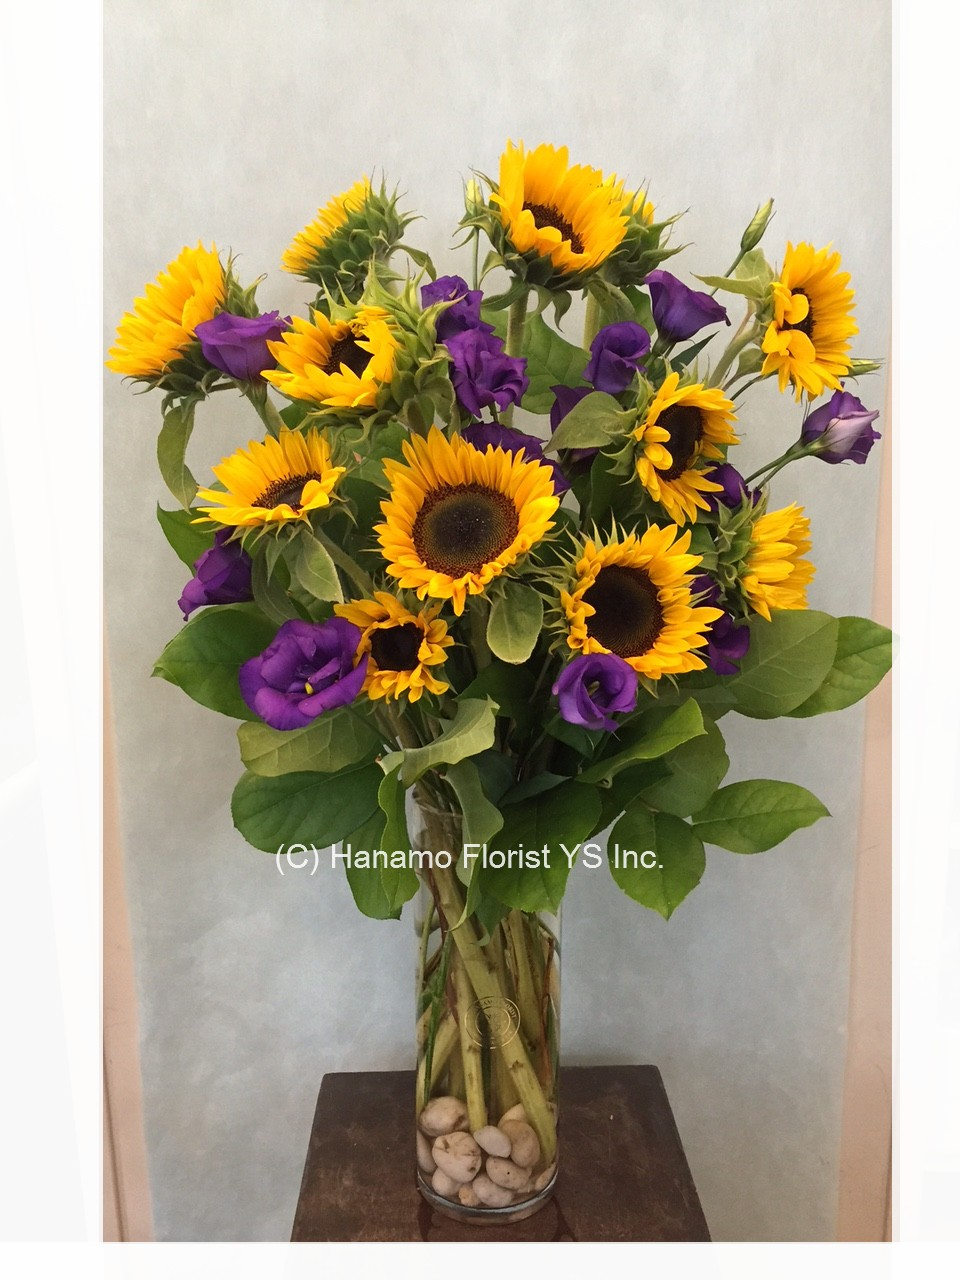 VASE729 Sunflowers & Seasonal Flowers in a Tall Vase